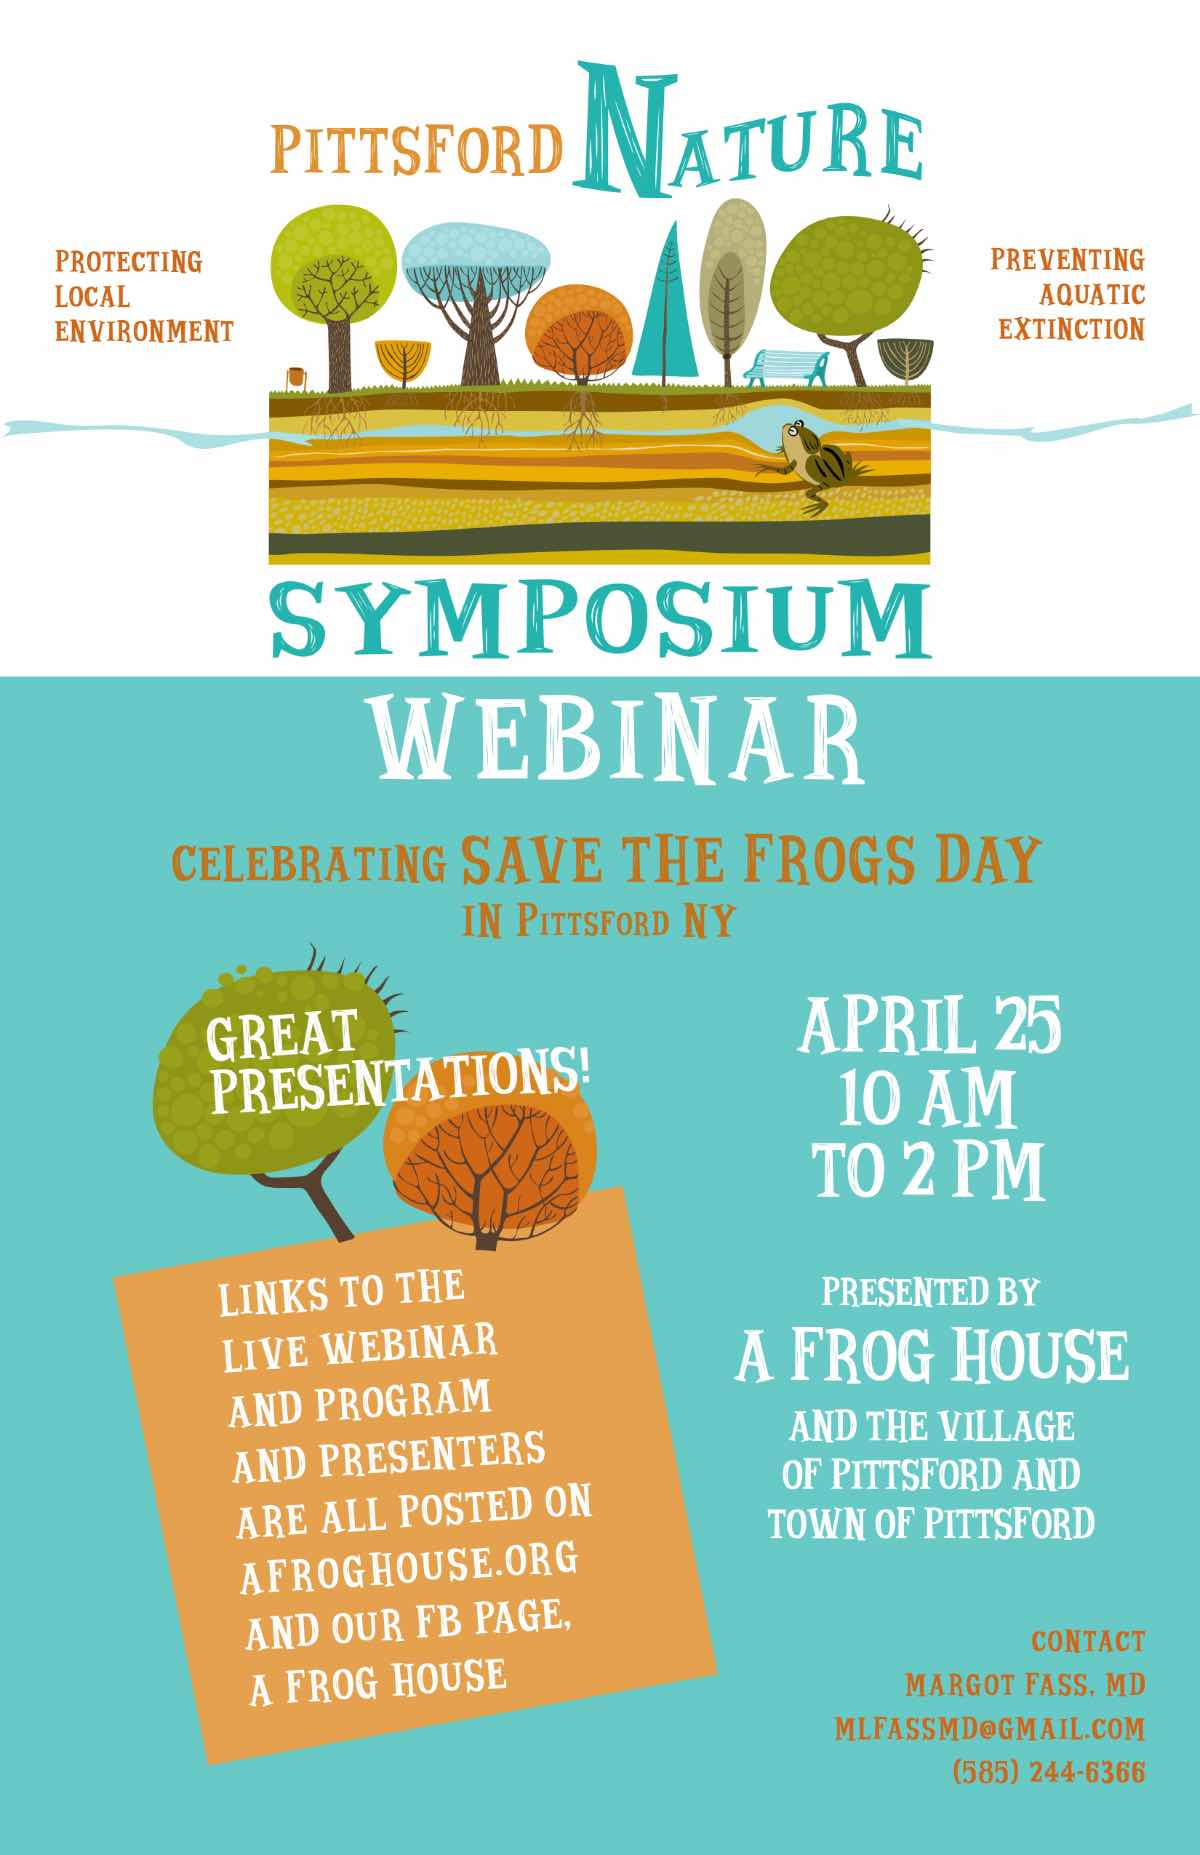 When public gatherings aren't possible, a webinar may save the day.